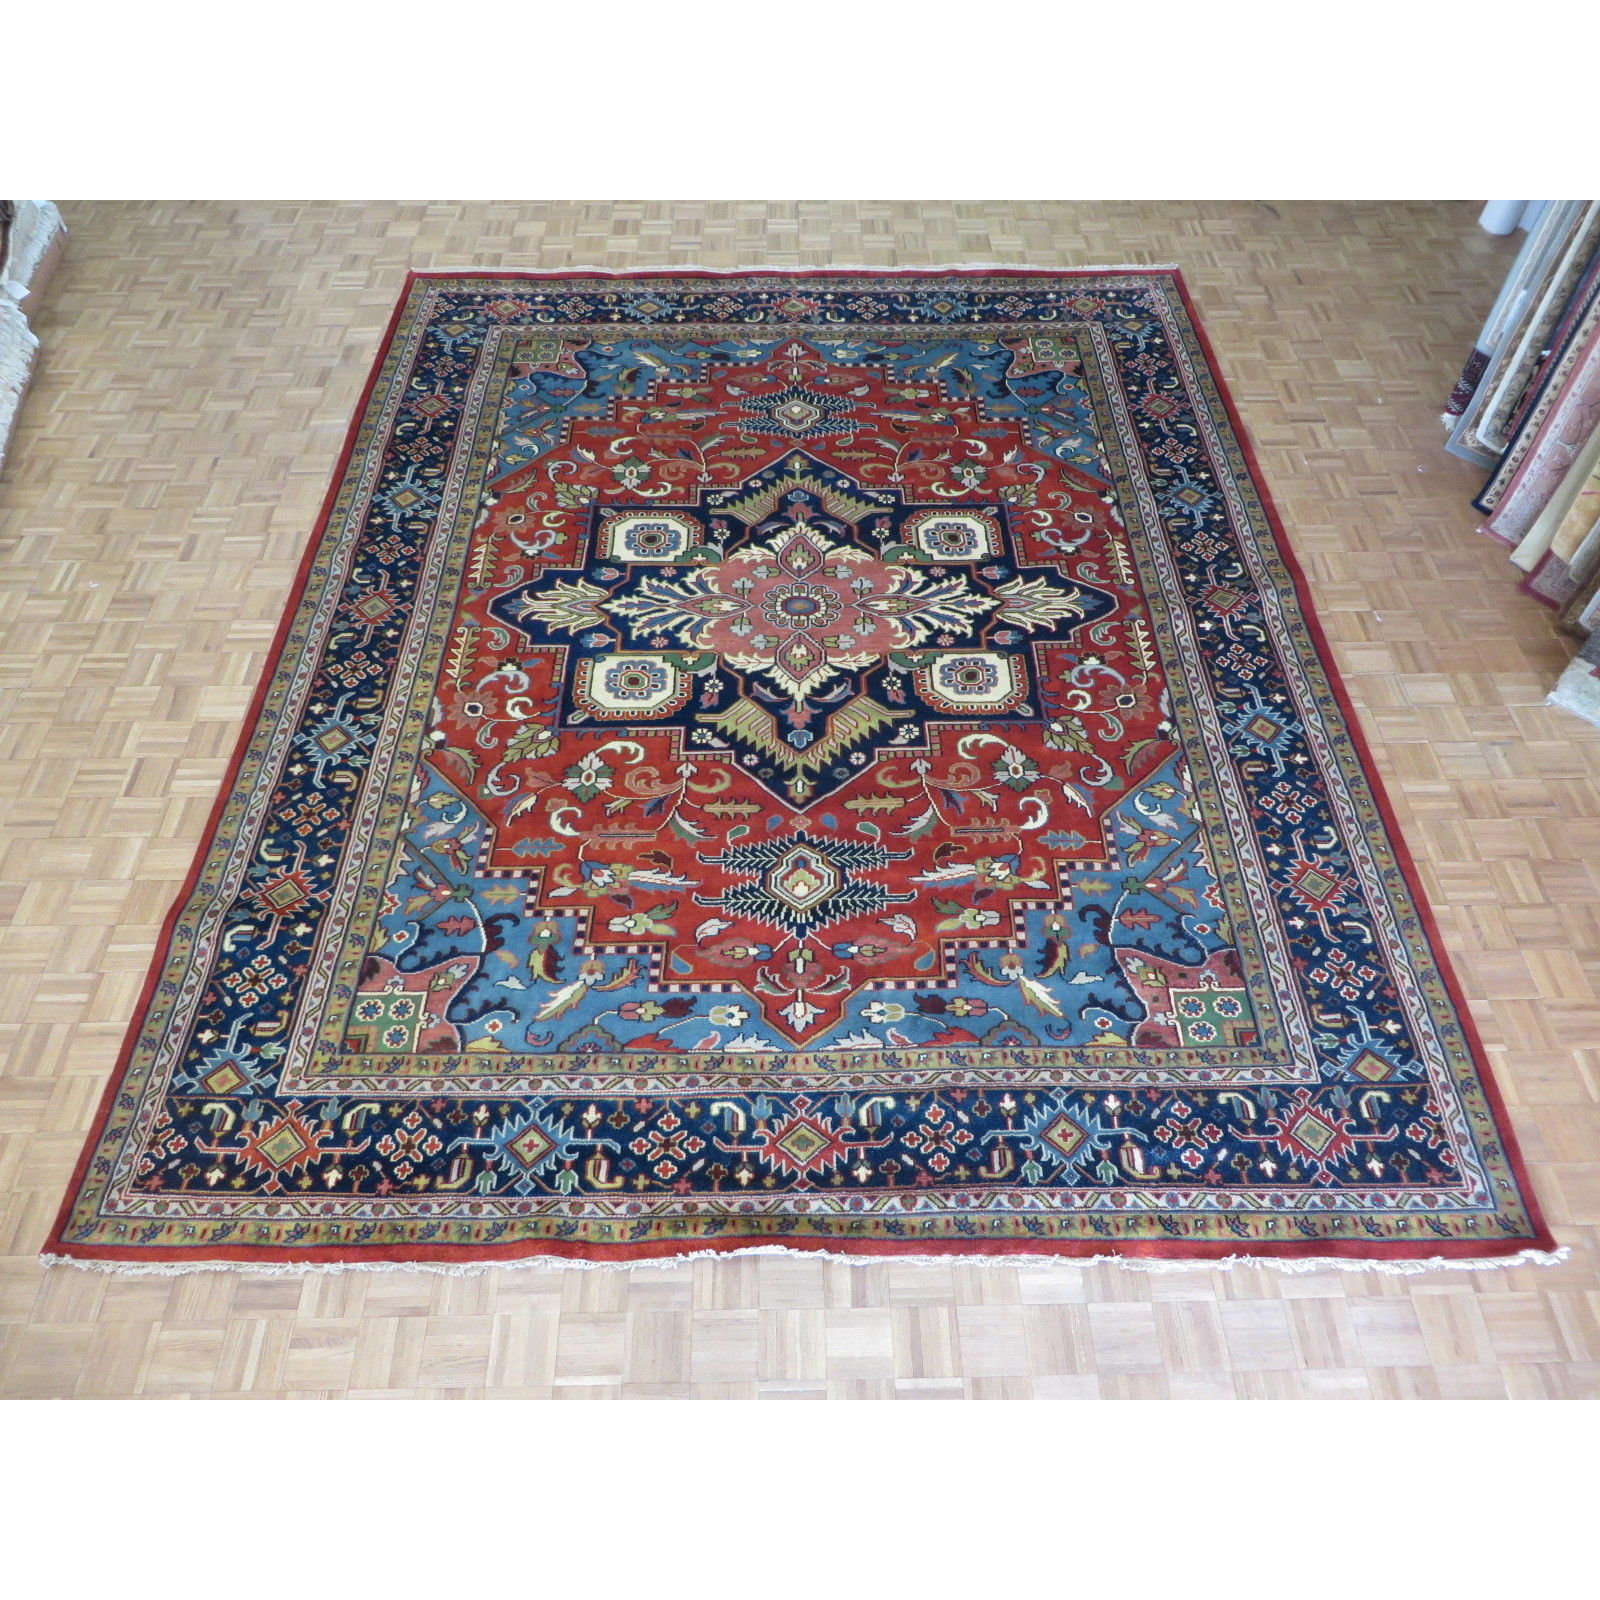 Serapi Heriz Brick Red Wool Hand Knotted Oriental Rug 11 10 X 14 6 Free Shipping Today 16107170